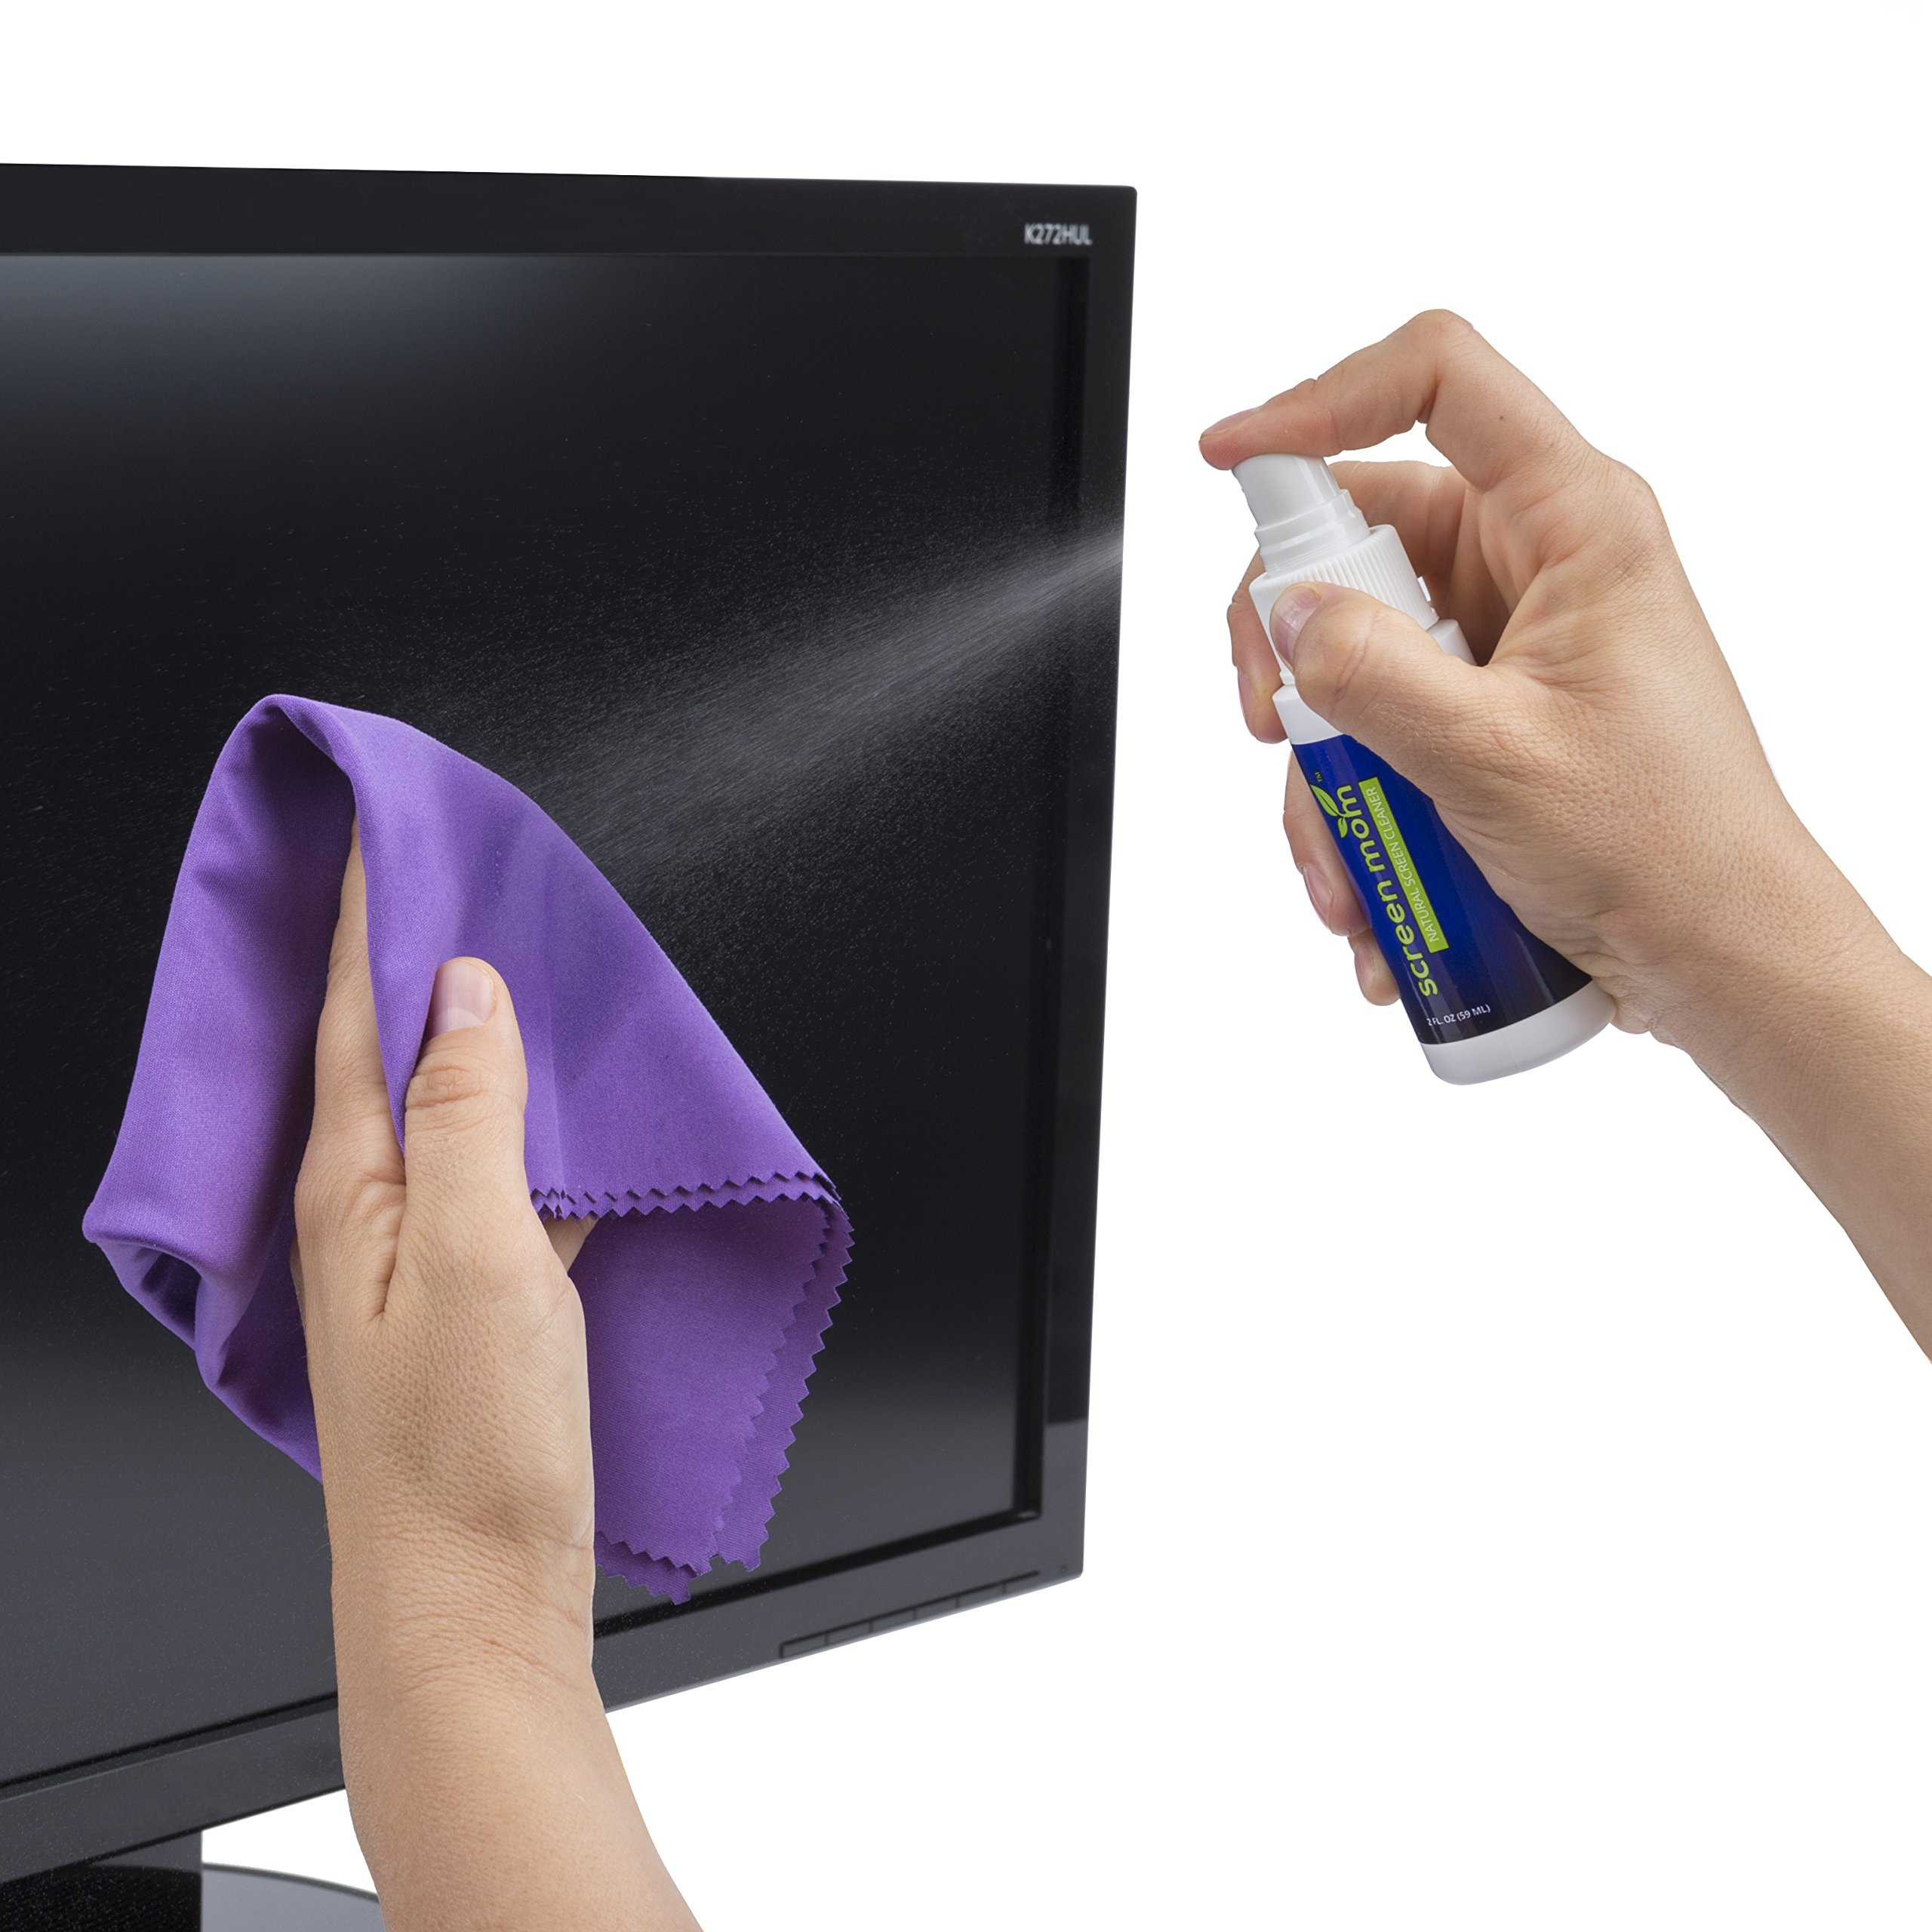 Screen Mom Screen Cleaner Kit - Best for Laptop, Phone Cleaner, iPad, Eyeglass, LED, LCD, TV -Includes 2oz Spray and 2 Purple Cleaning Cloths -Great for Travel,Smartphone,Touchscreen,Kindle,3D Glasses by Screen Mom (Image #3)